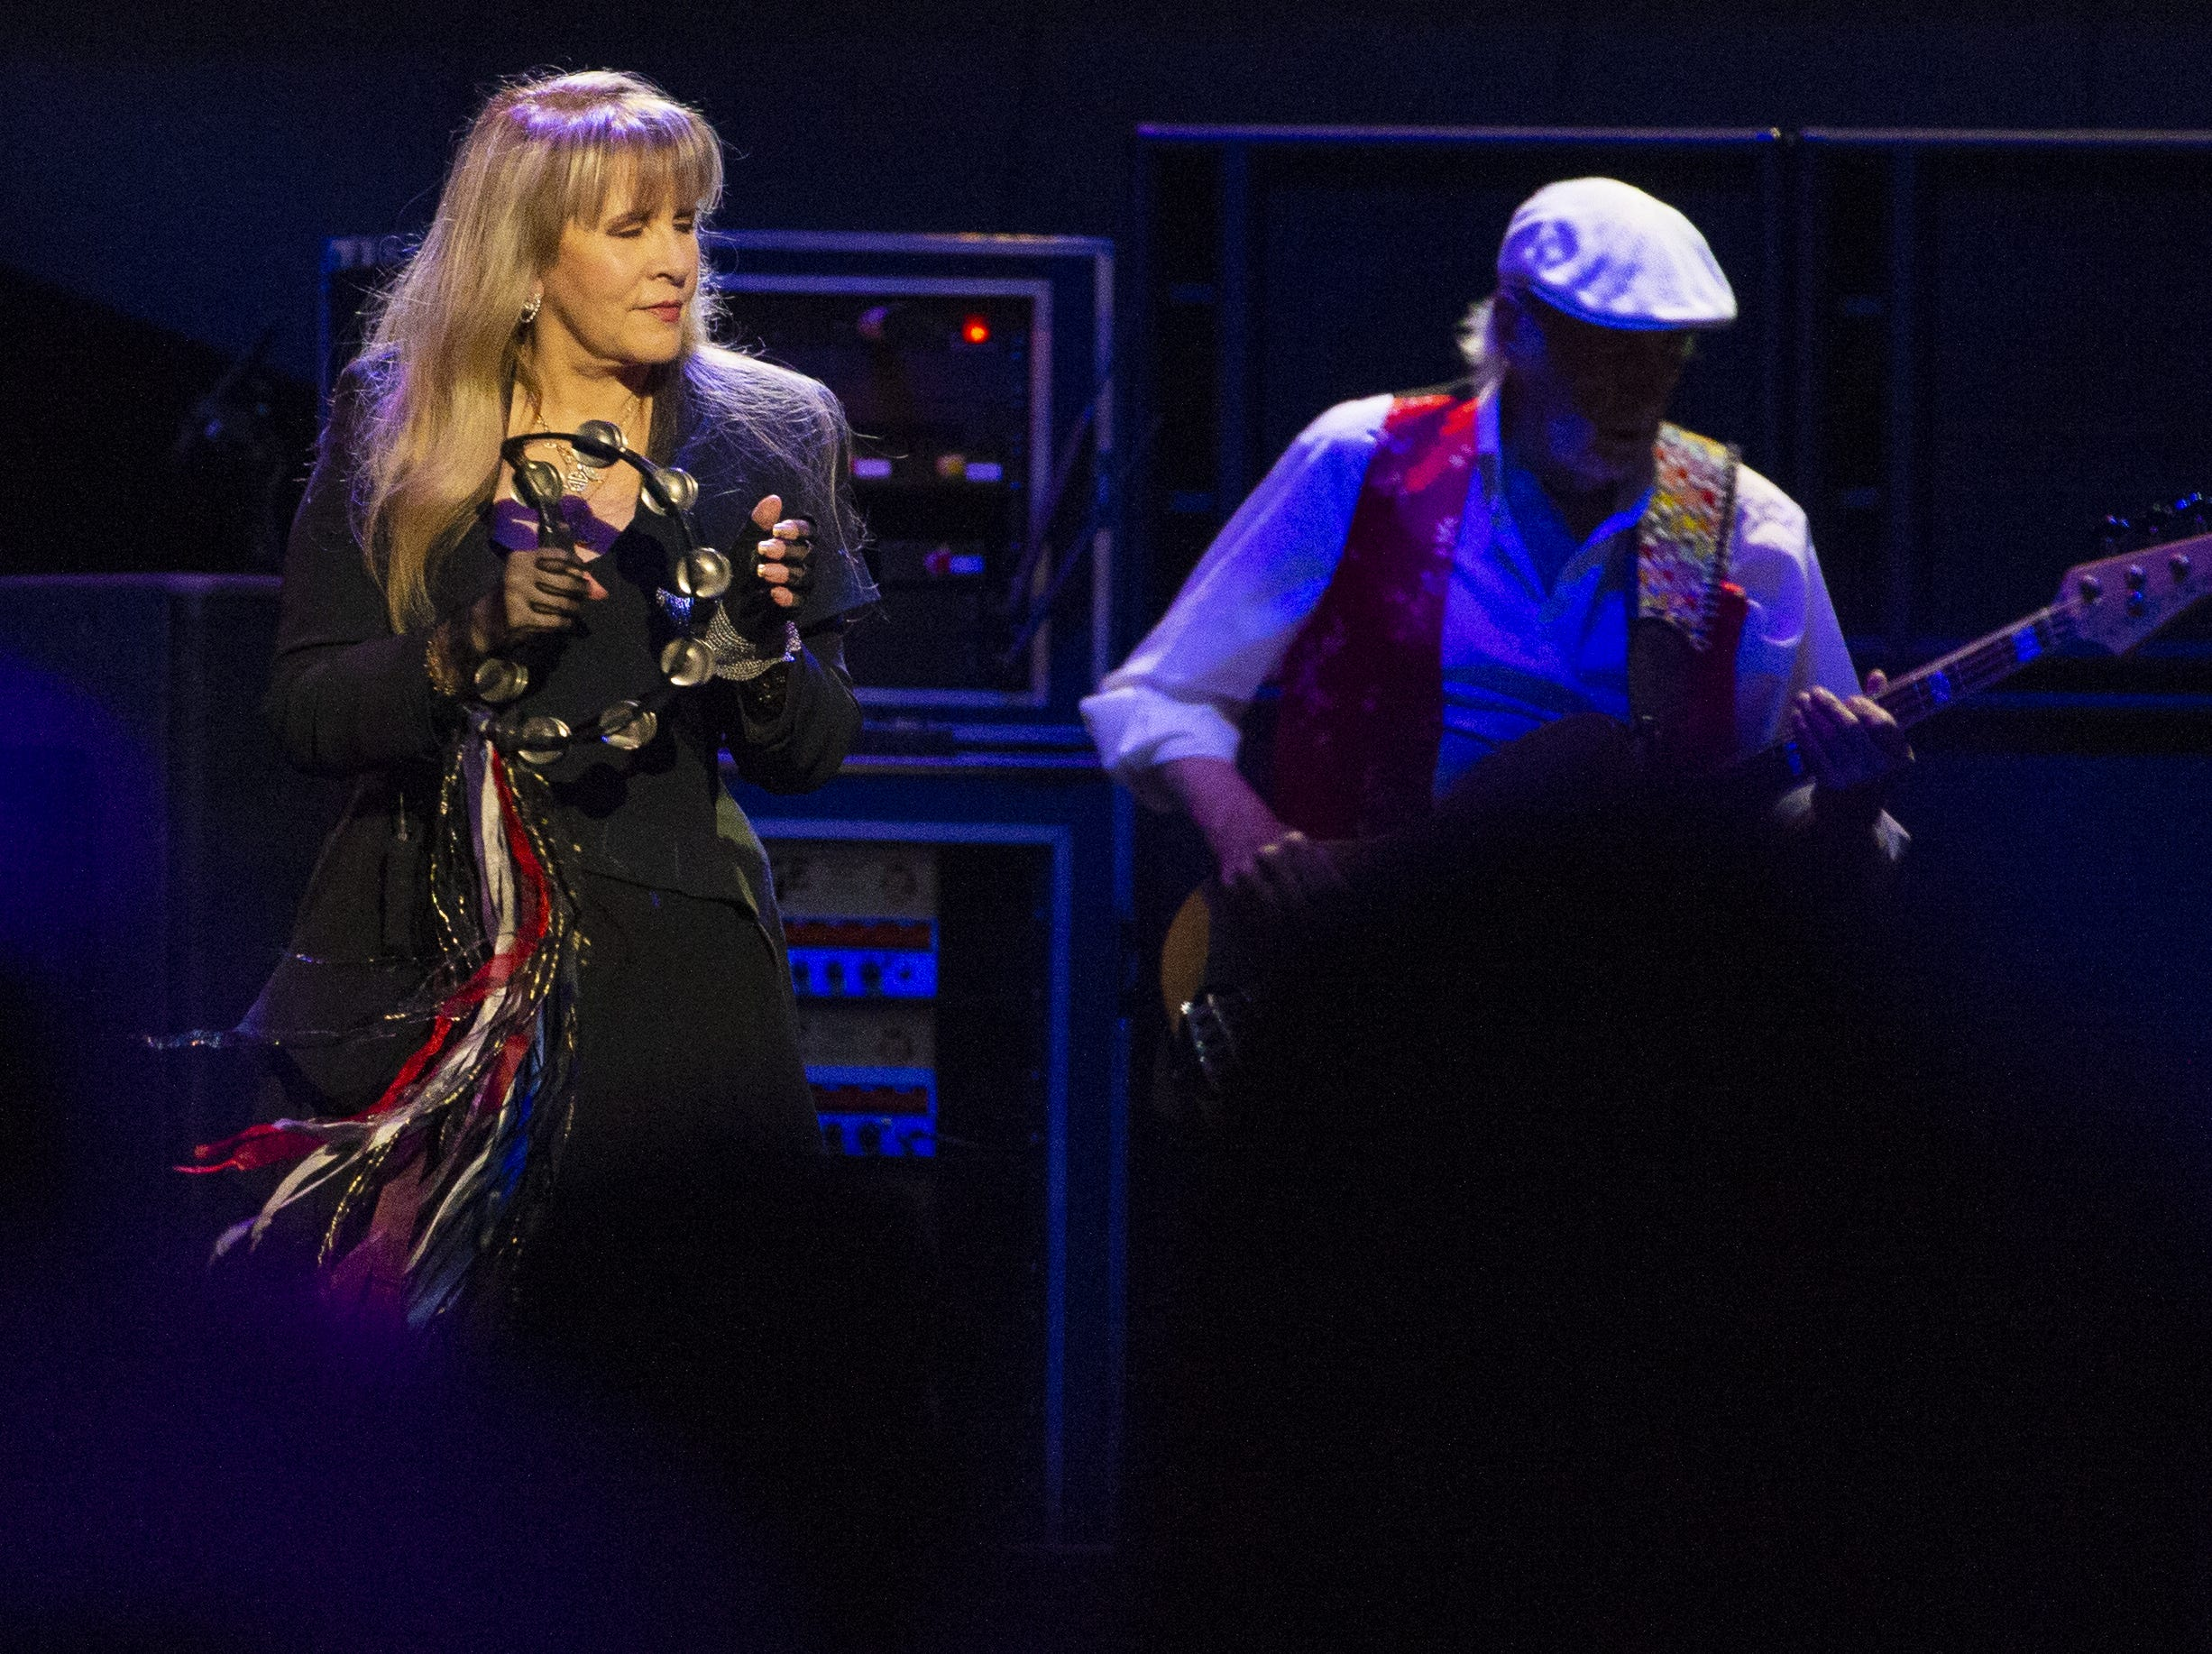 Stevie Nicks, and John McVie, of Fleetwood Mac perform at Talking Stick Resort Arena in Phoenix on November 28, 2018.